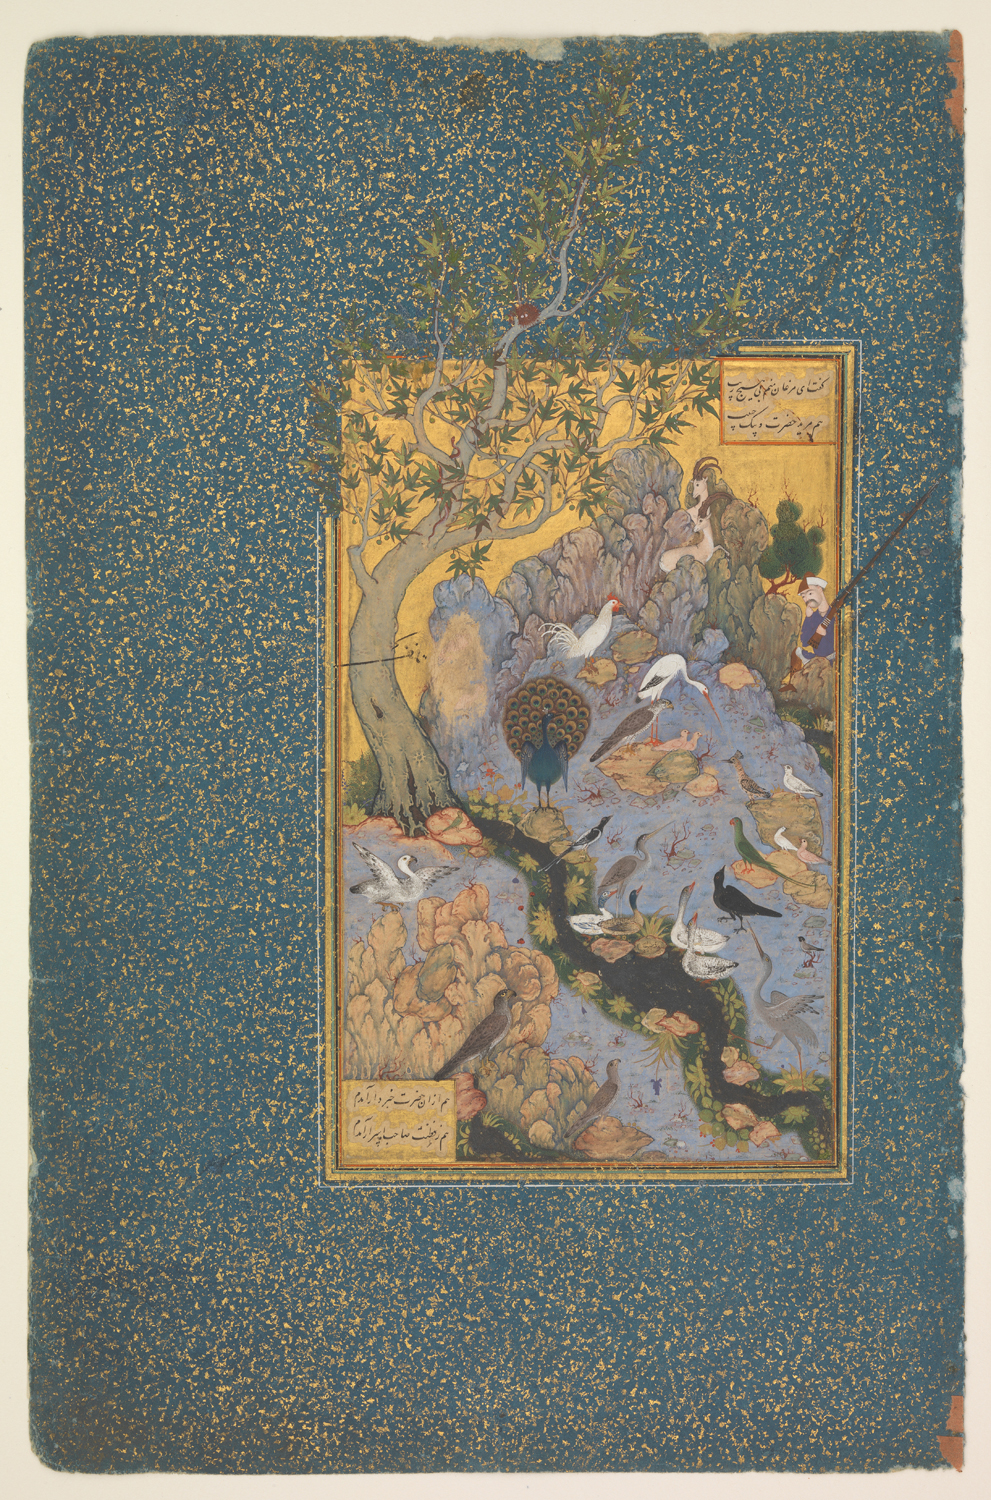 The Concourse of the Birds, Folio 11r from a Mantiq al-tair (Language of the Birds)